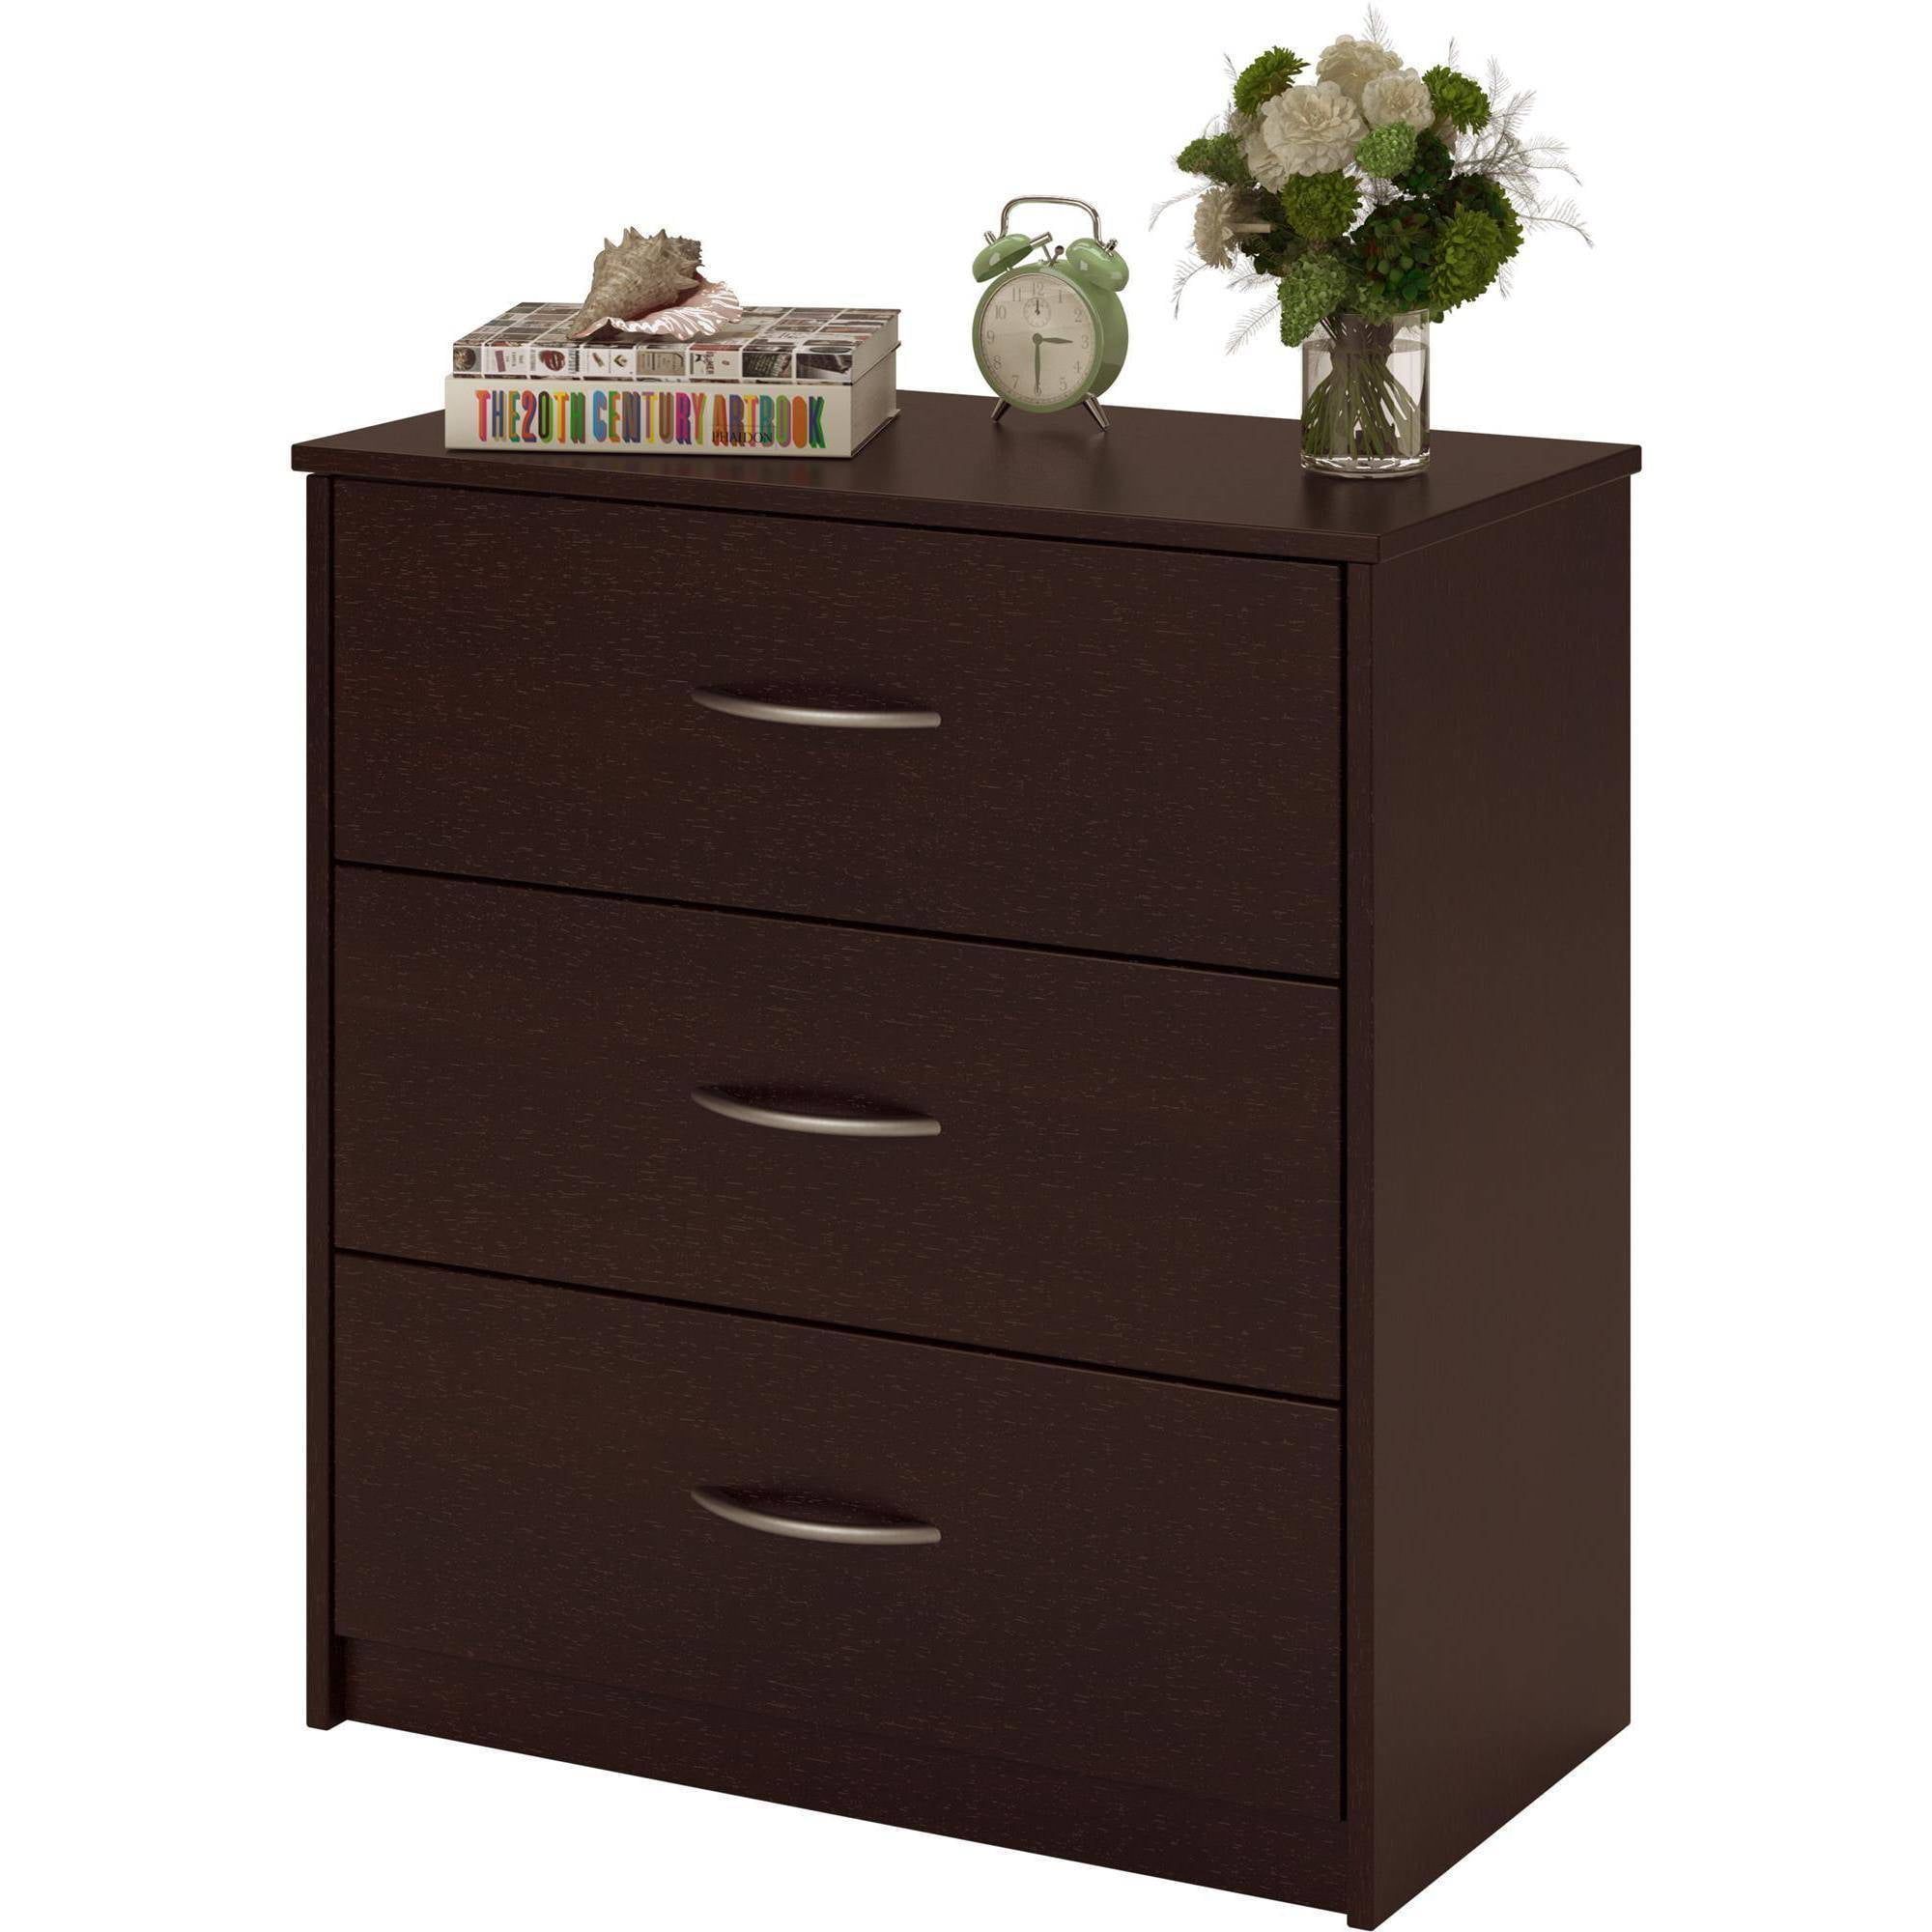 3 Drawer Dresser Chest Bedroom Furniture Black Brown White